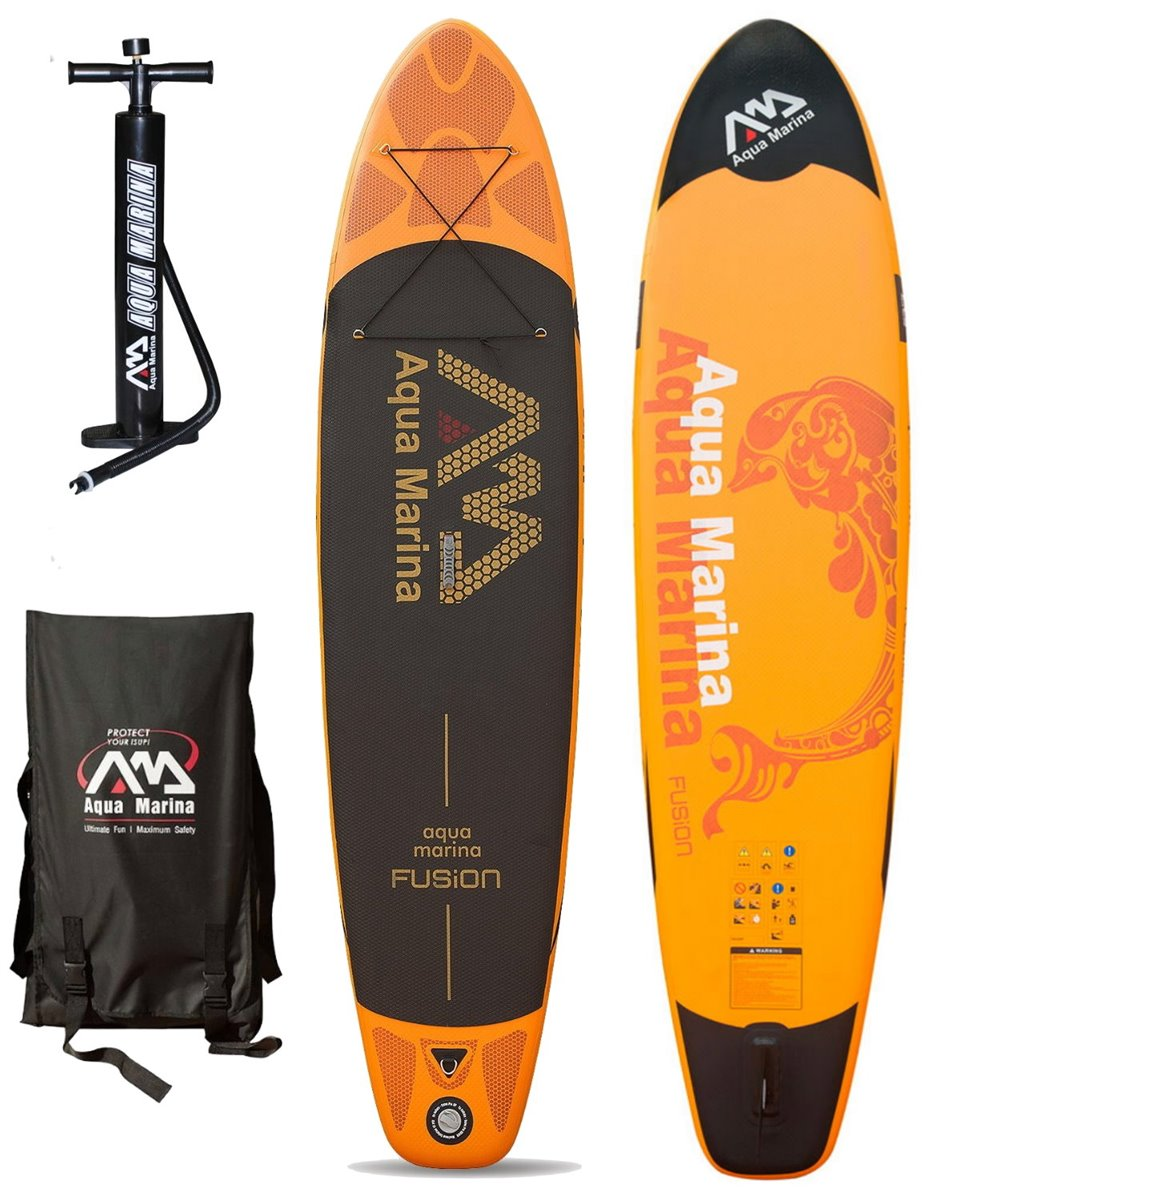 aqua marina spk fusion sup inflatable stand up paddle surfboard ebay. Black Bedroom Furniture Sets. Home Design Ideas